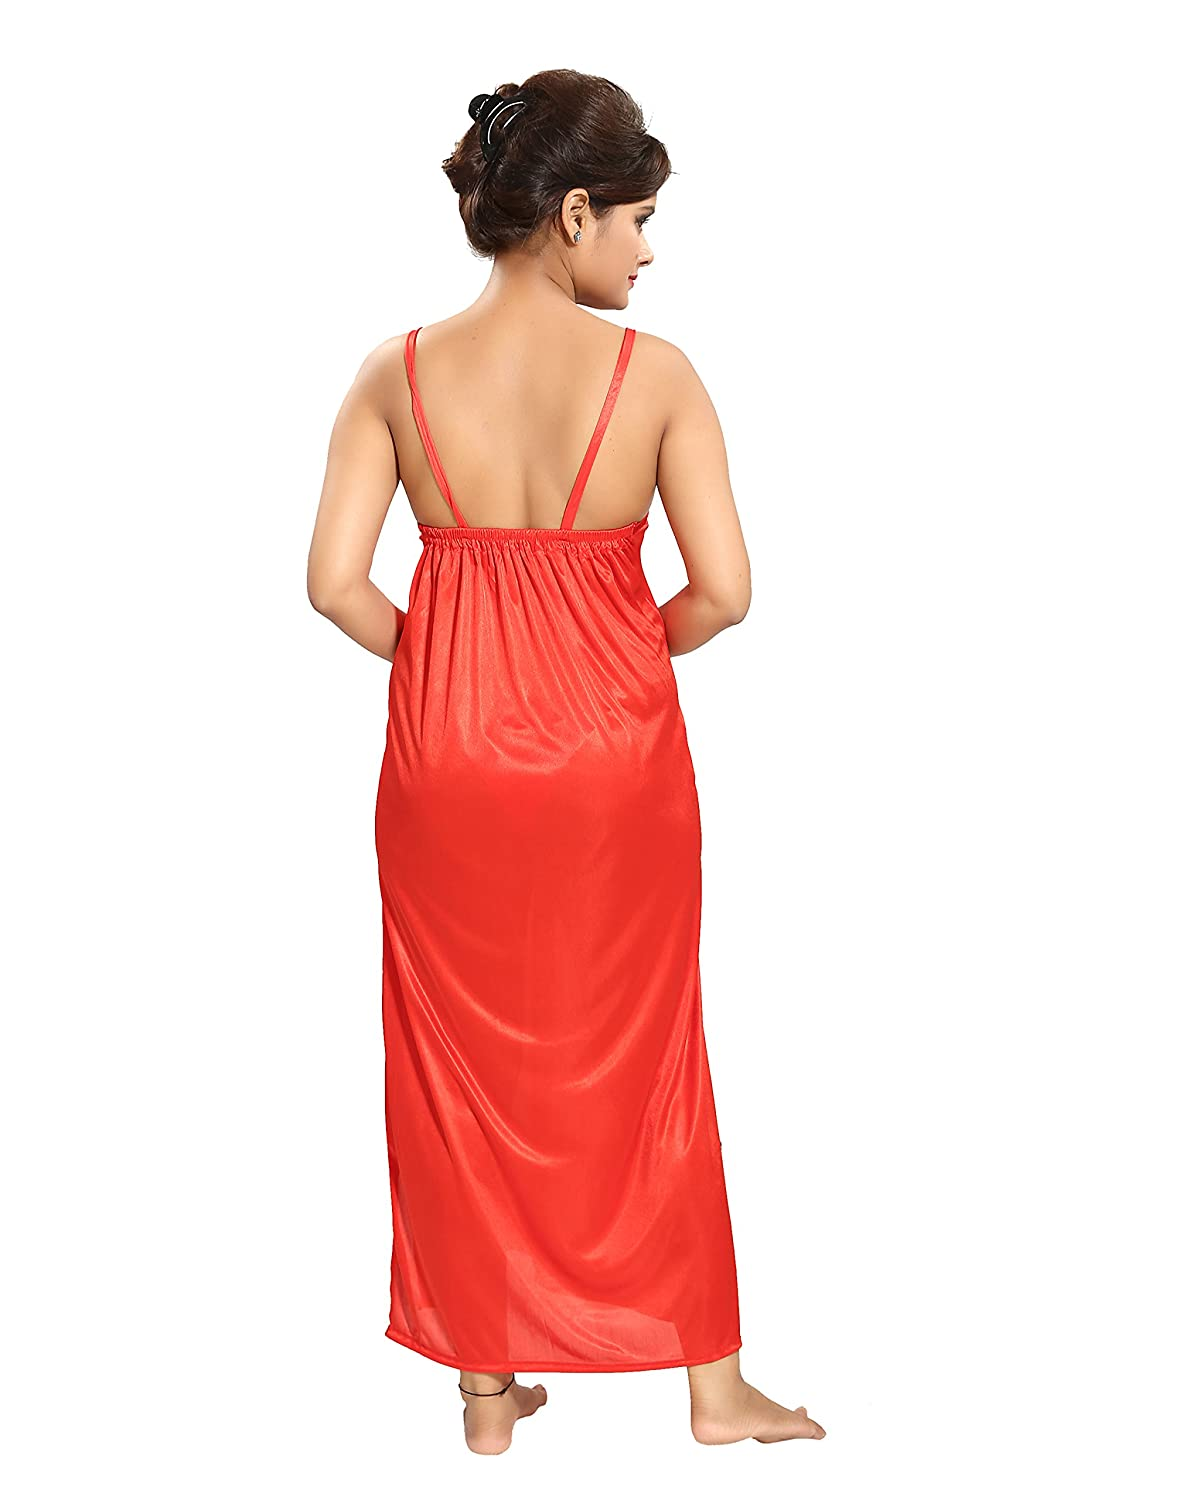 dc0c8cb39c TUCUTE Women's Satin Nighty - 4 Pc Set- Nighty/Robe/Top/Bottoms (Red)  D.No.1165: Amazon.in: Clothing & Accessories